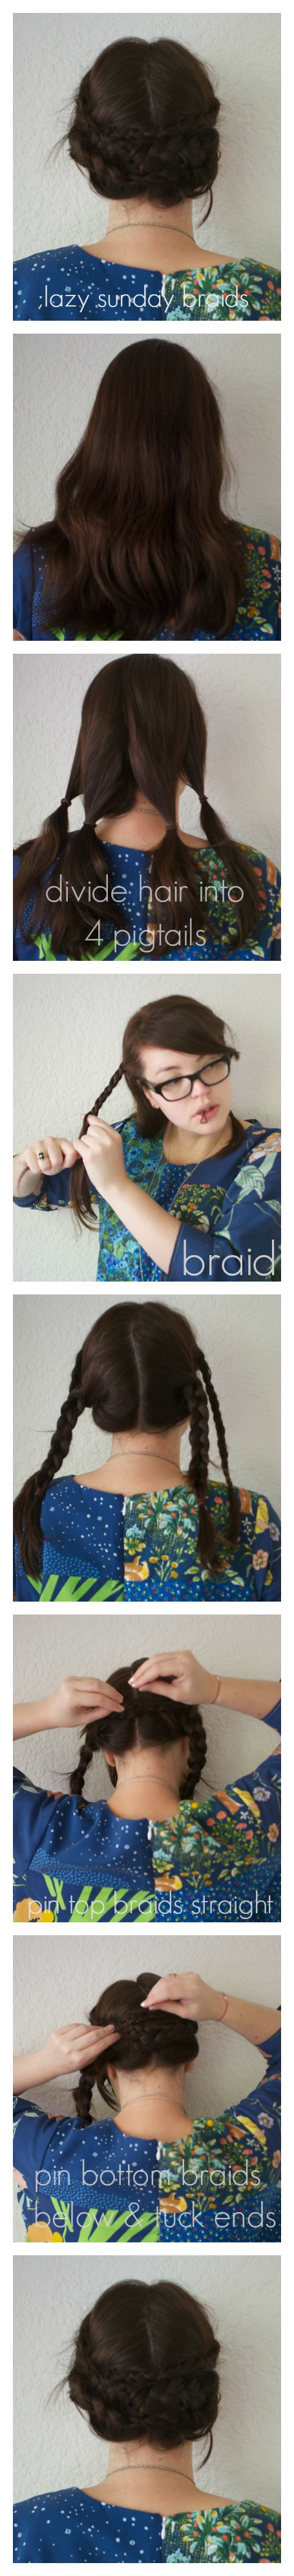 sunday braids tutorial